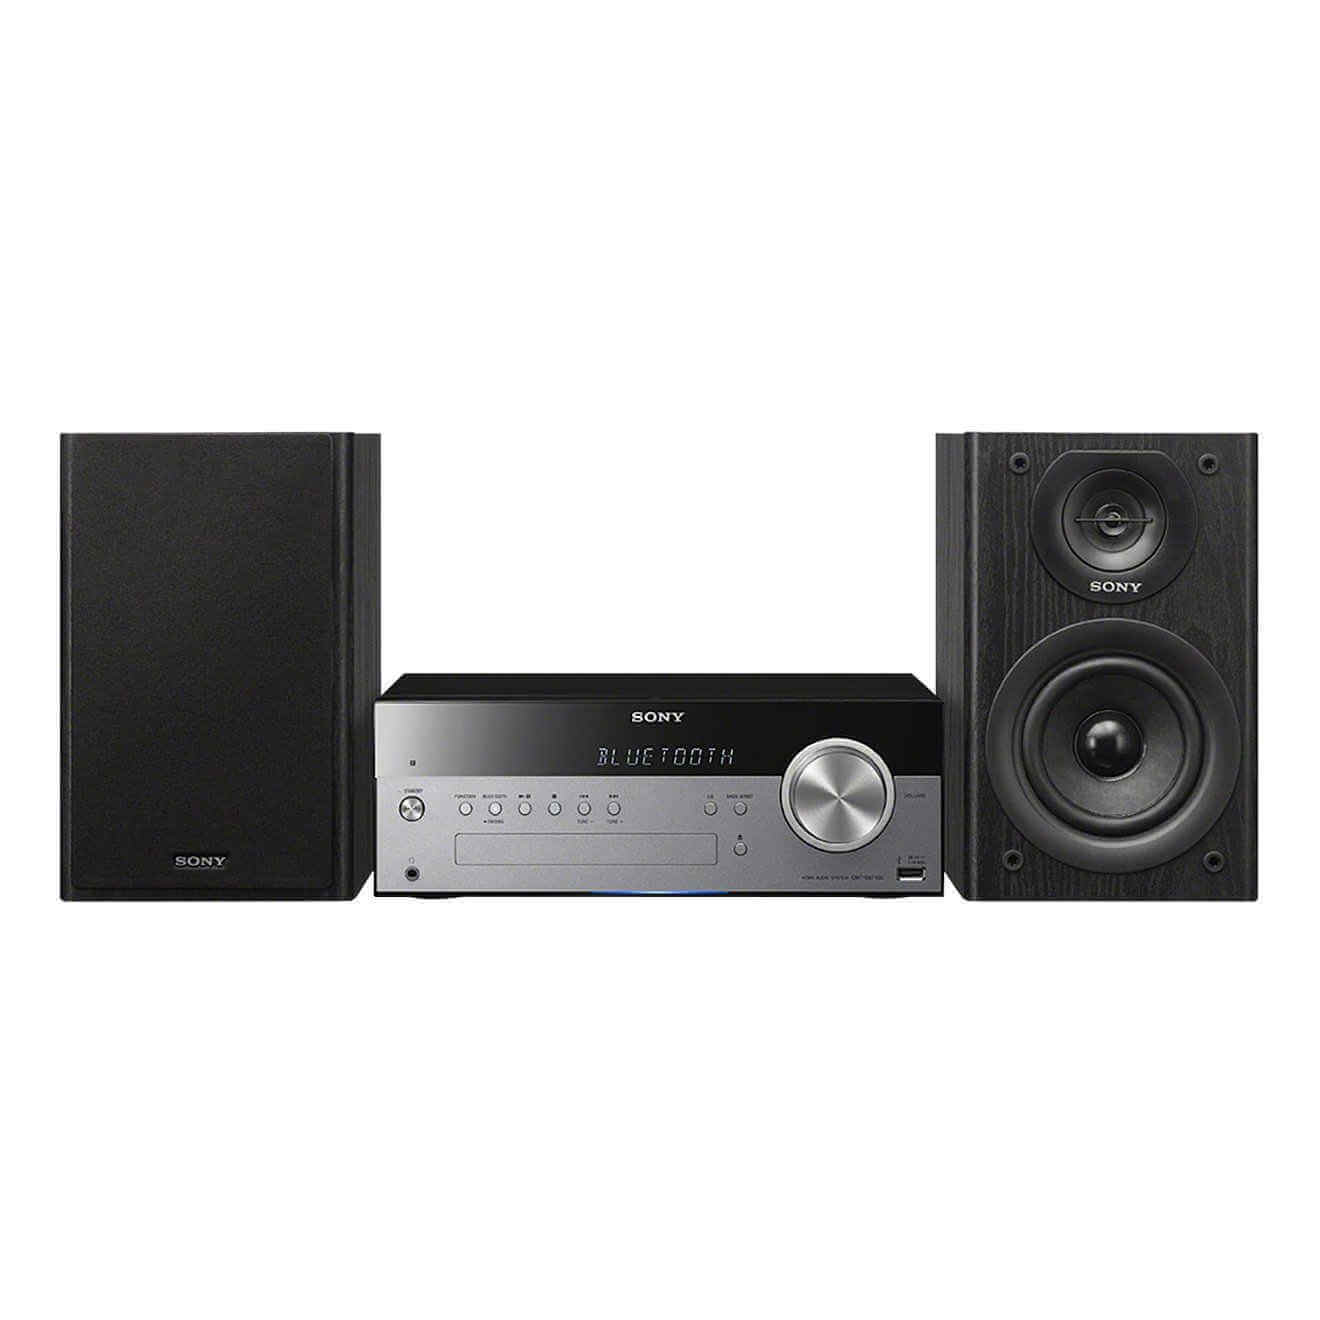 Sony CMT-SBT100 Micro Musik System ©Sony